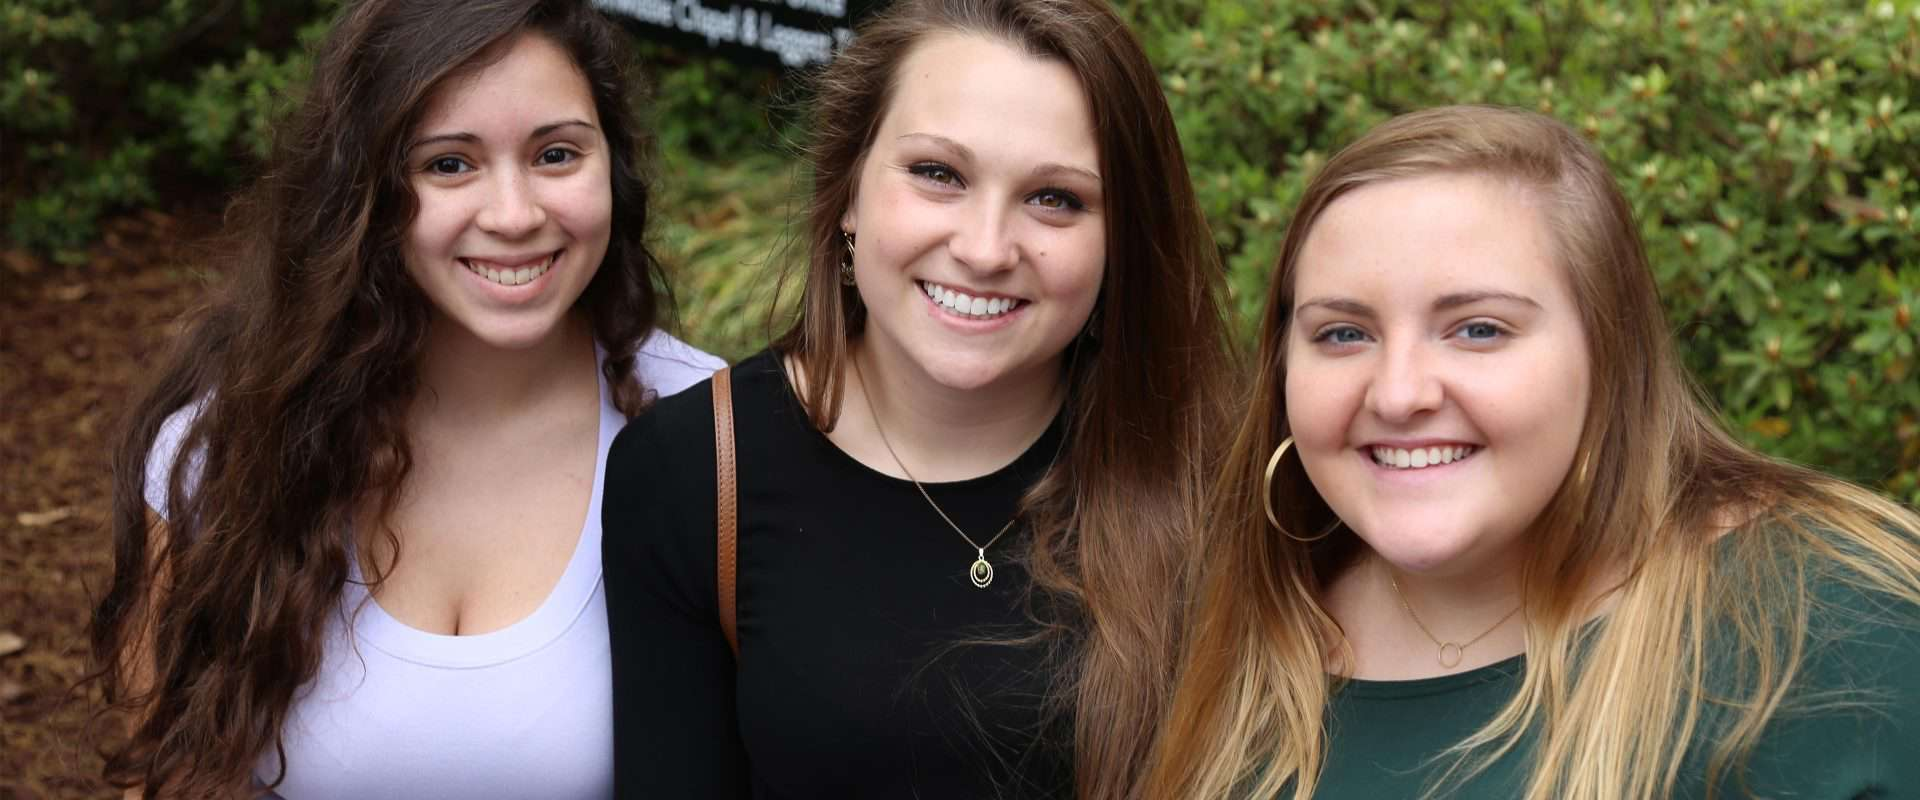 WPU students smiling on campus.